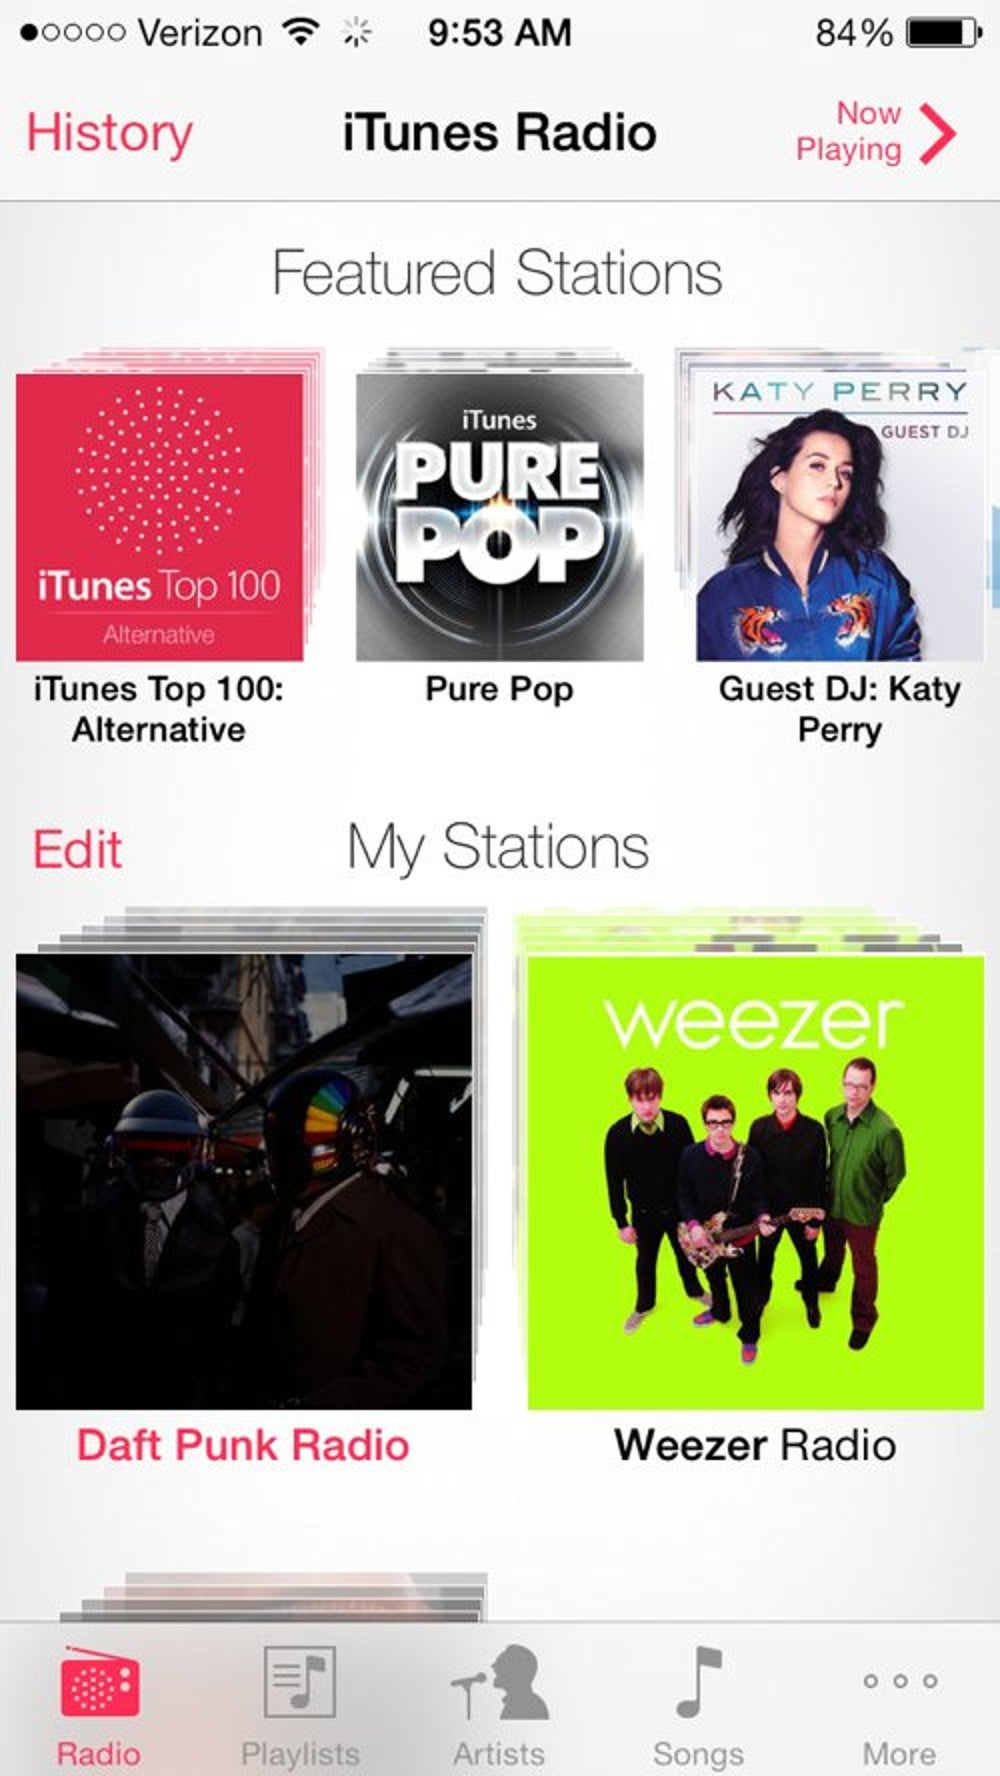 The Music app has a free Pandora-like streaming music service. Type in an artist, song, or genre and iTunes will create a customized radio station for you. It's free, but you'll have to listen to some commercials.